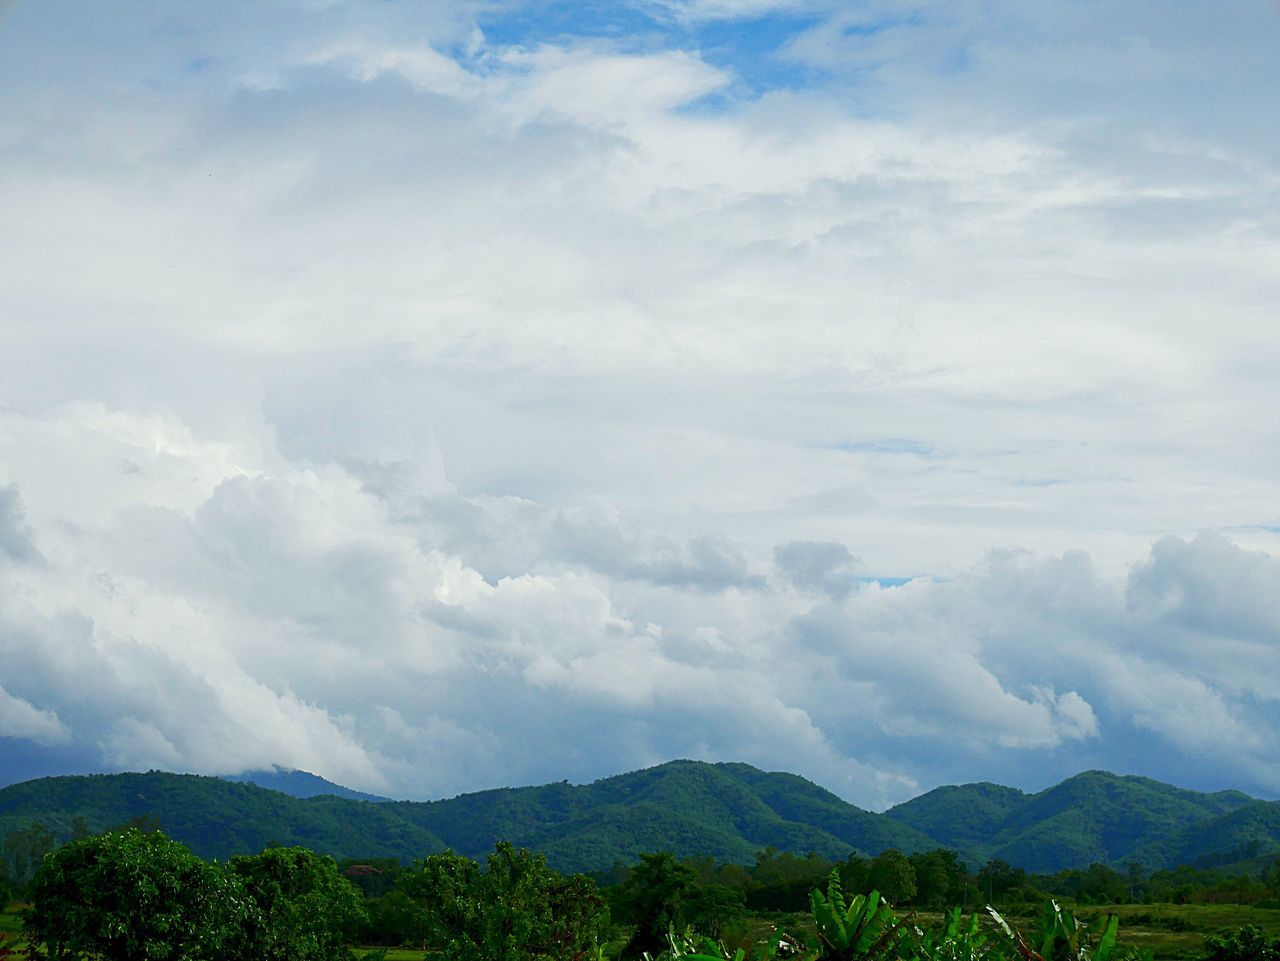 sky, tranquility, nature, beauty in nature, cloud - sky, tranquil scene, scenics, no people, mountain, day, landscape, outdoors, tree